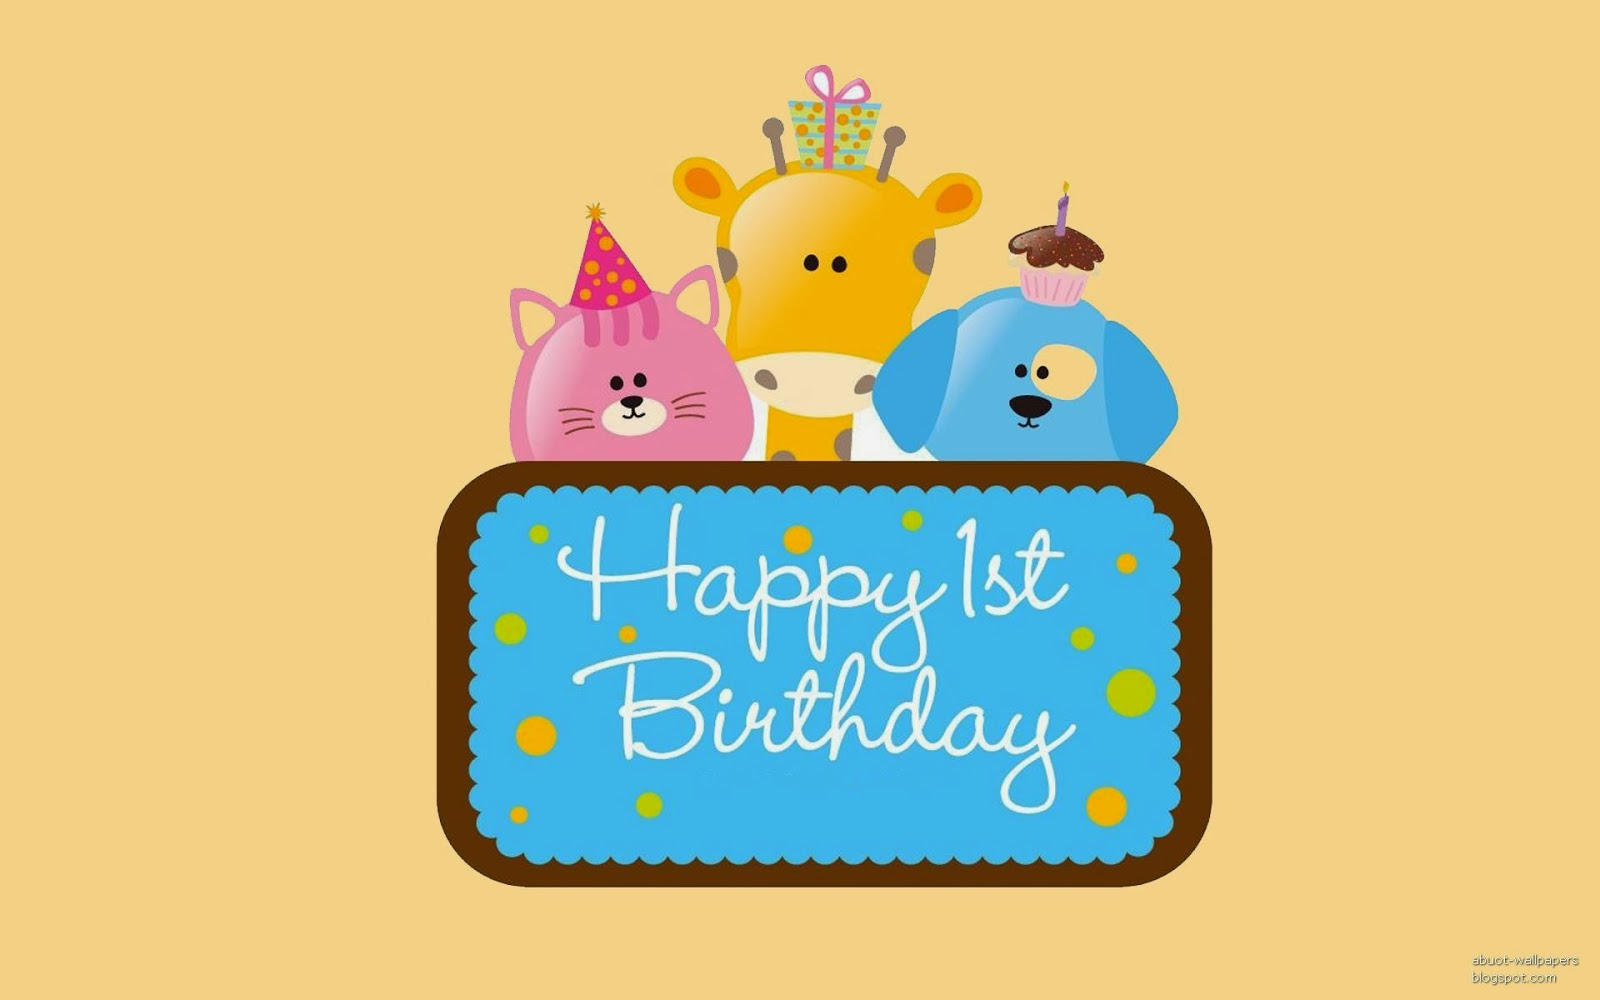 Very Cute Happy Birthday Card With Wish Message For Kids And